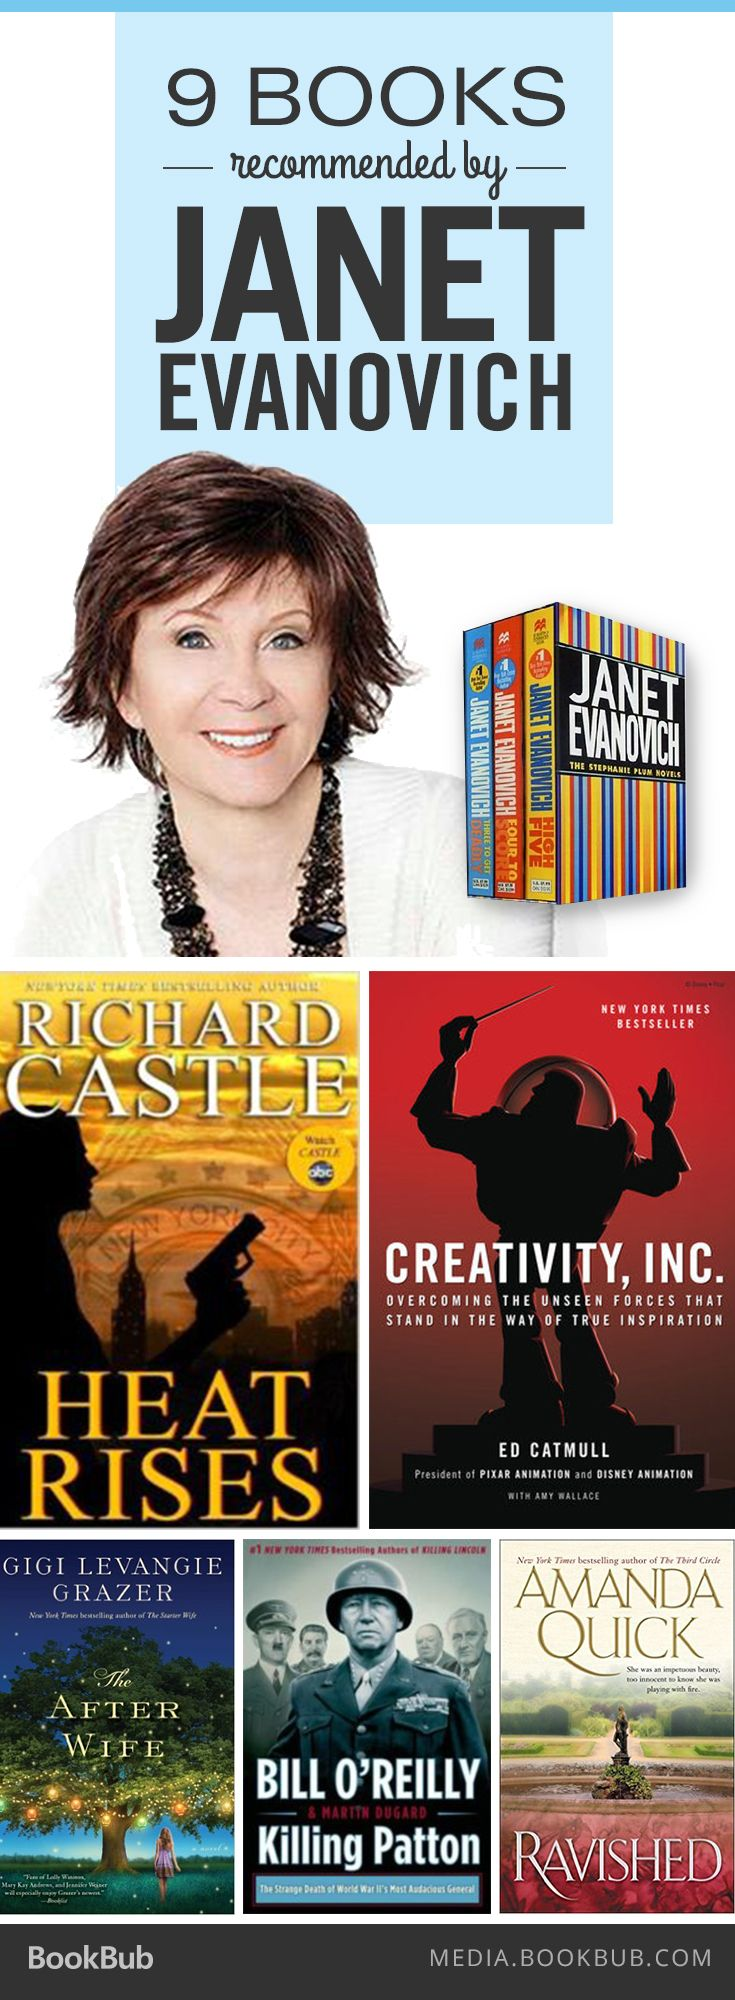 9 books recommended by Janet Evanovich, including Richard Castle's Heat Rises.